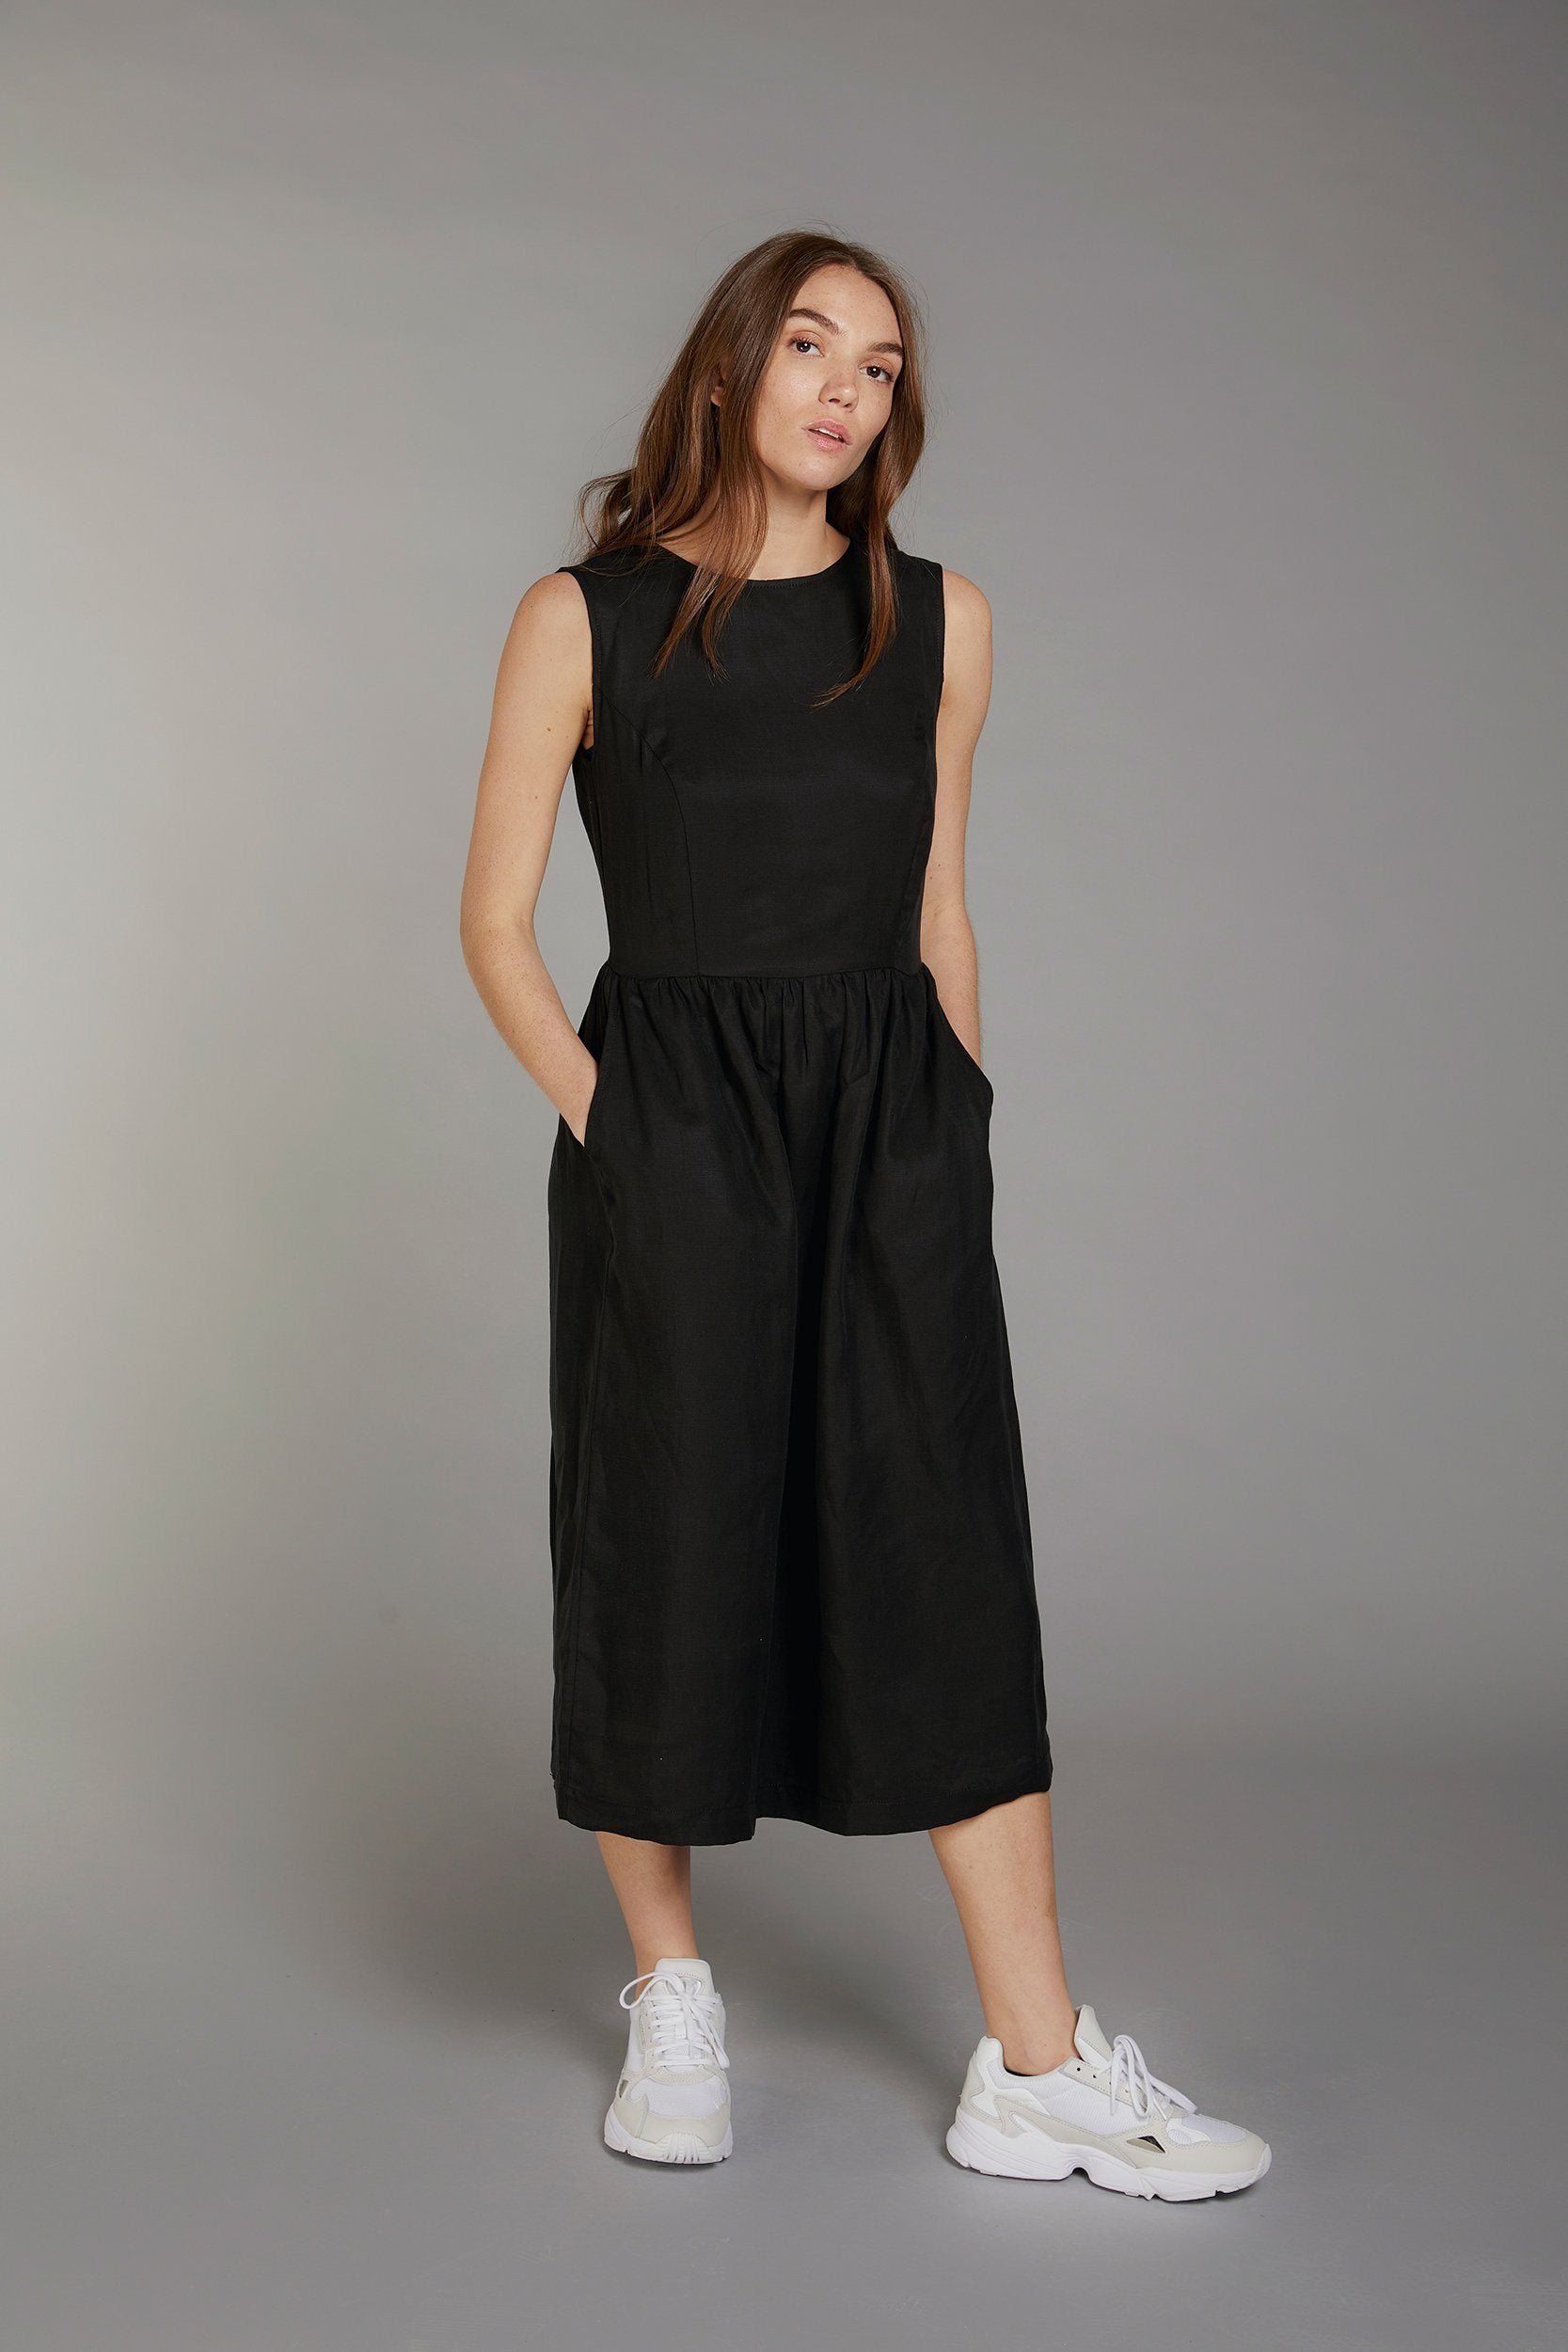 PRIMROSE Tencel Linen Dress Coal - Komodo Fashion